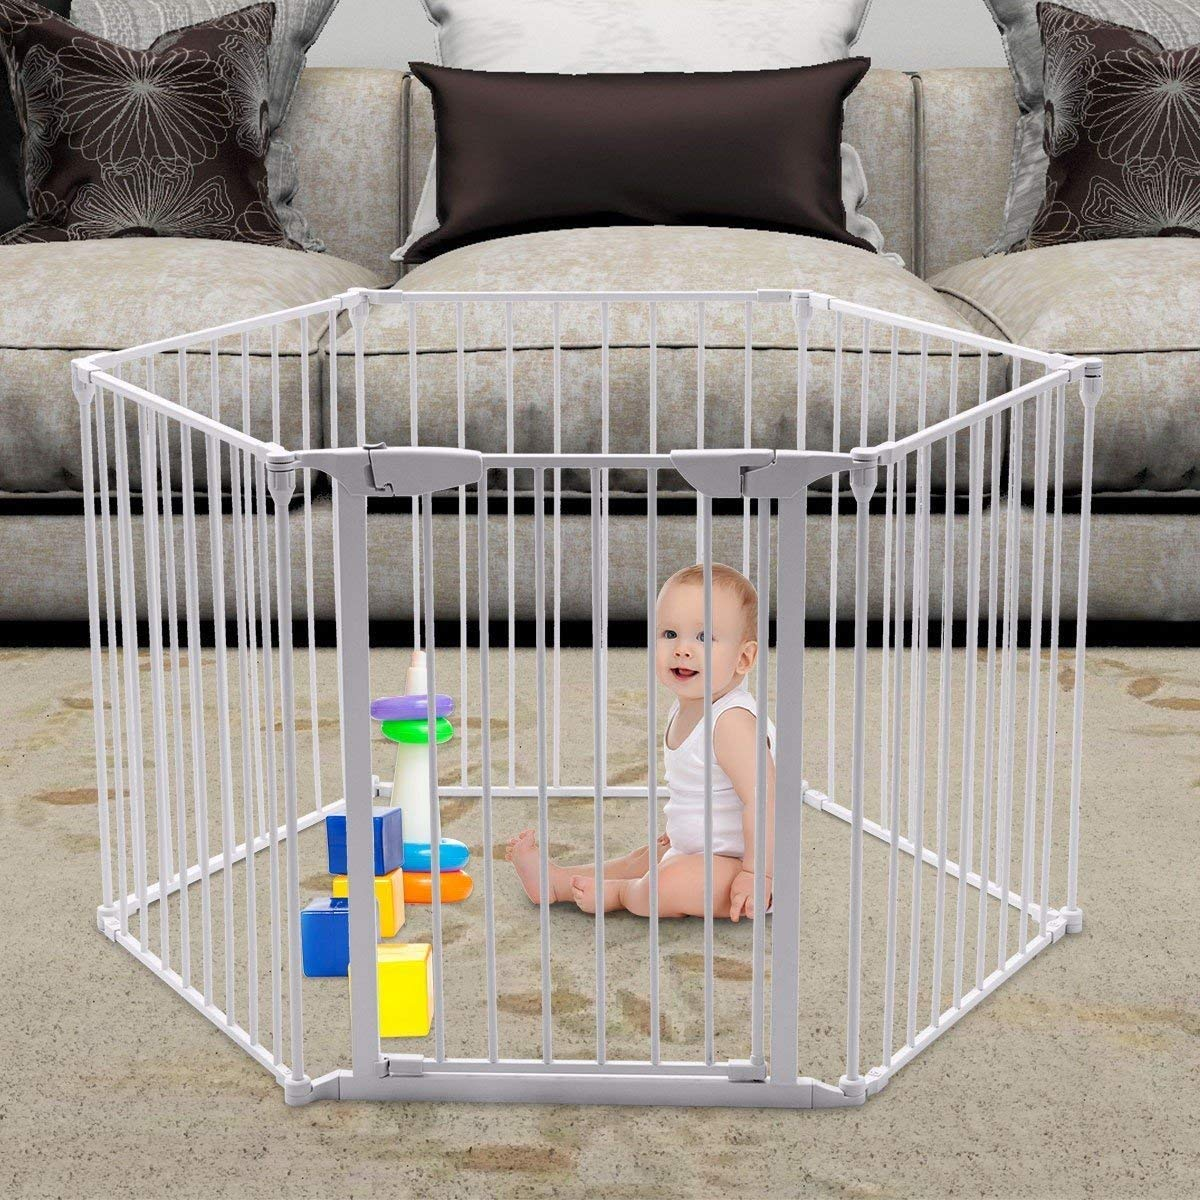 Teekland White Baby Safety Gate/Baby Protect Walls/Fireplace Fence/Dog Gates Indoor/Play Yard with Door,6 Panels Fireplace Extended Metal Fence for Pet/Toddler/Dog/Cat/Christmas Tree by Teekland (Image #2)